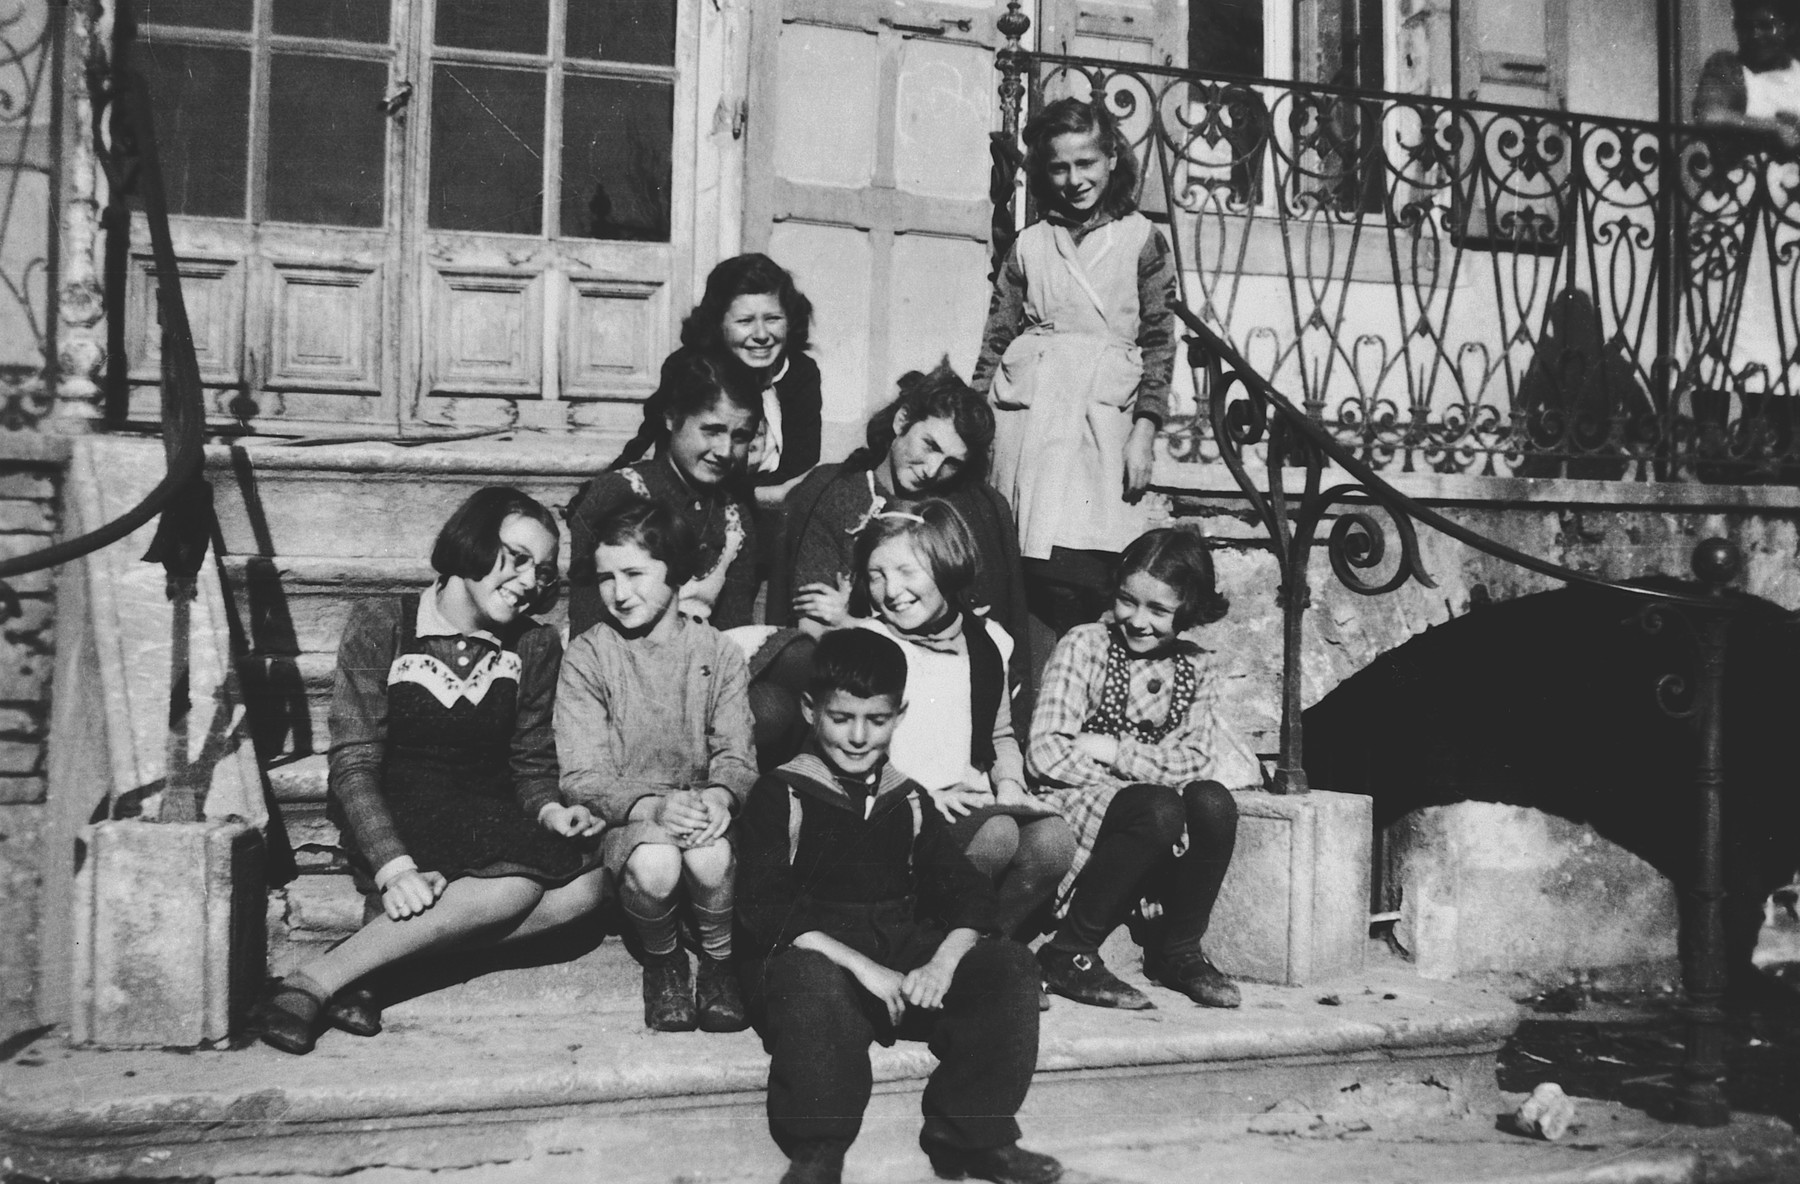 A group of children poses outside on the steps of Pringy, a children's home sponsored by the Swiss Red Cross.  Hilda Krieser is seated in the back.  Her younger sister Anny is seated in the center, wearing a white shirt.  Hannelore Schwarschild (who was taken out of Rivesaltes together with the Krieser sisters) is seated in the far left corner, and Laure Wildmann (later Kolb) is pictured with long braids.  The girl on the top step is Lore Flegenheimer.